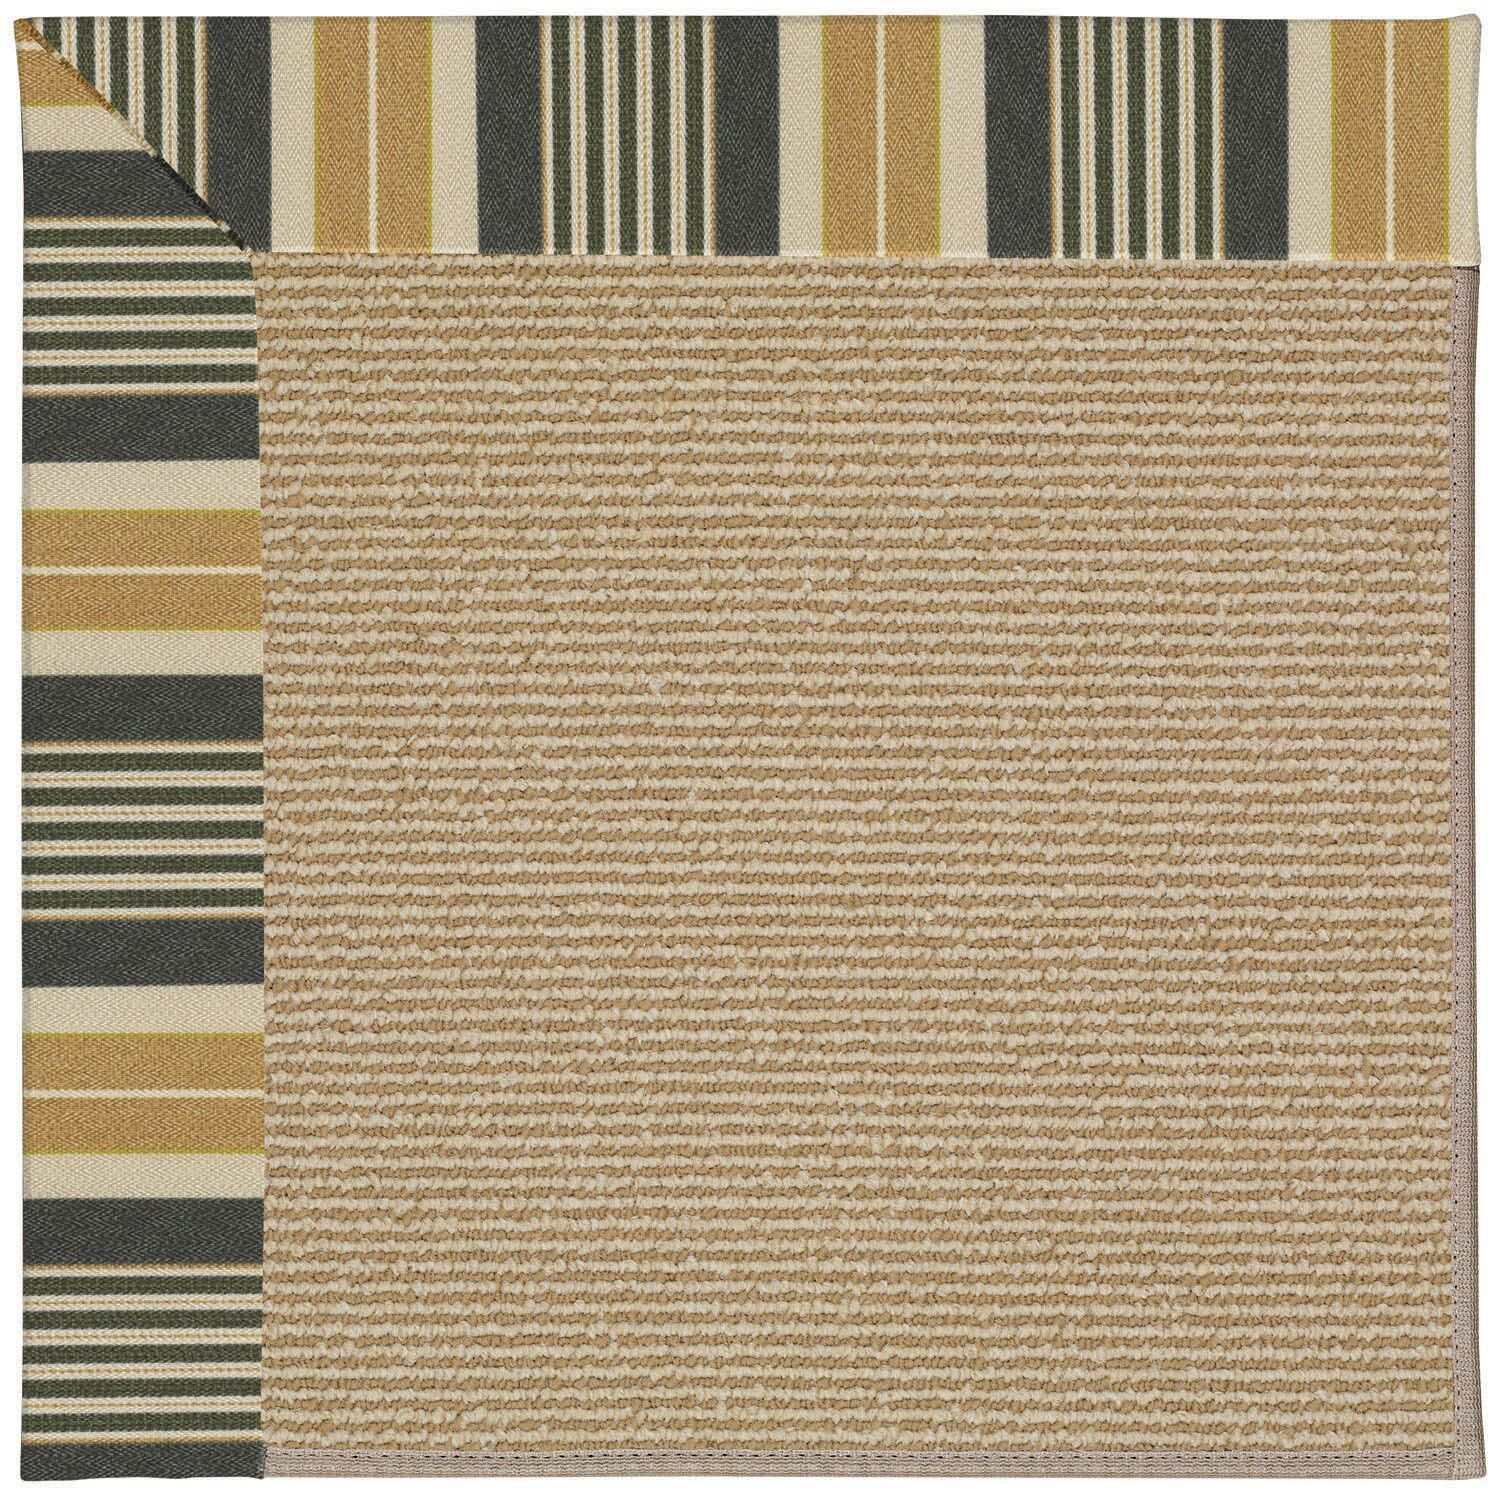 Lisle Machine Tufted Multi-colored/Brown Indoor/Outdoor Area Rug Rug Size: Round 12' x 12'